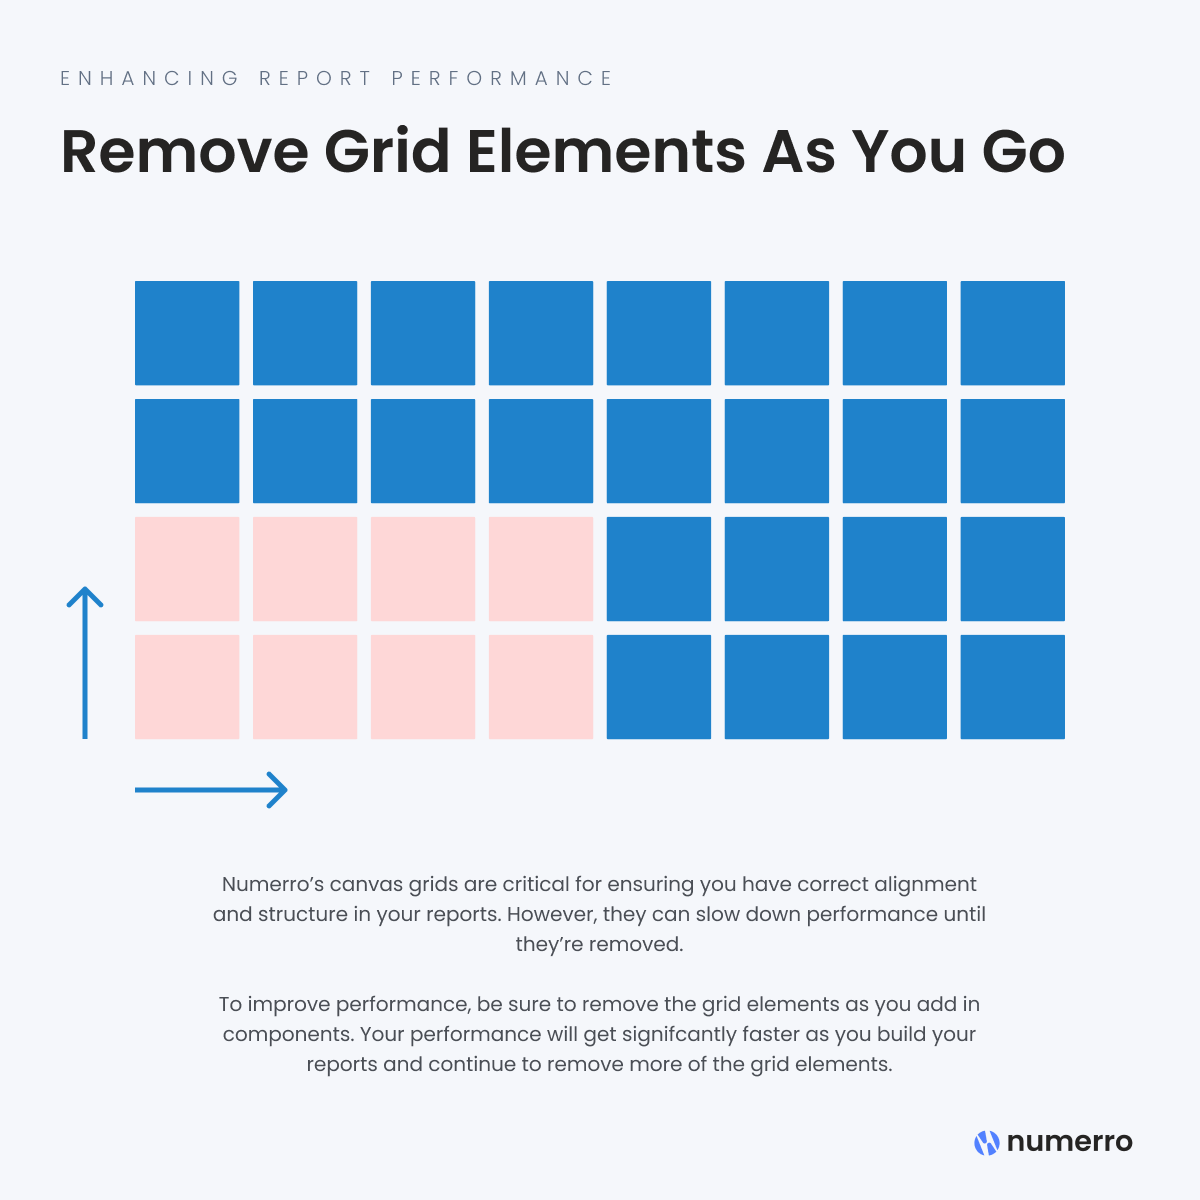 Enhancing Report Performance - Remove Grid Elements As You Go